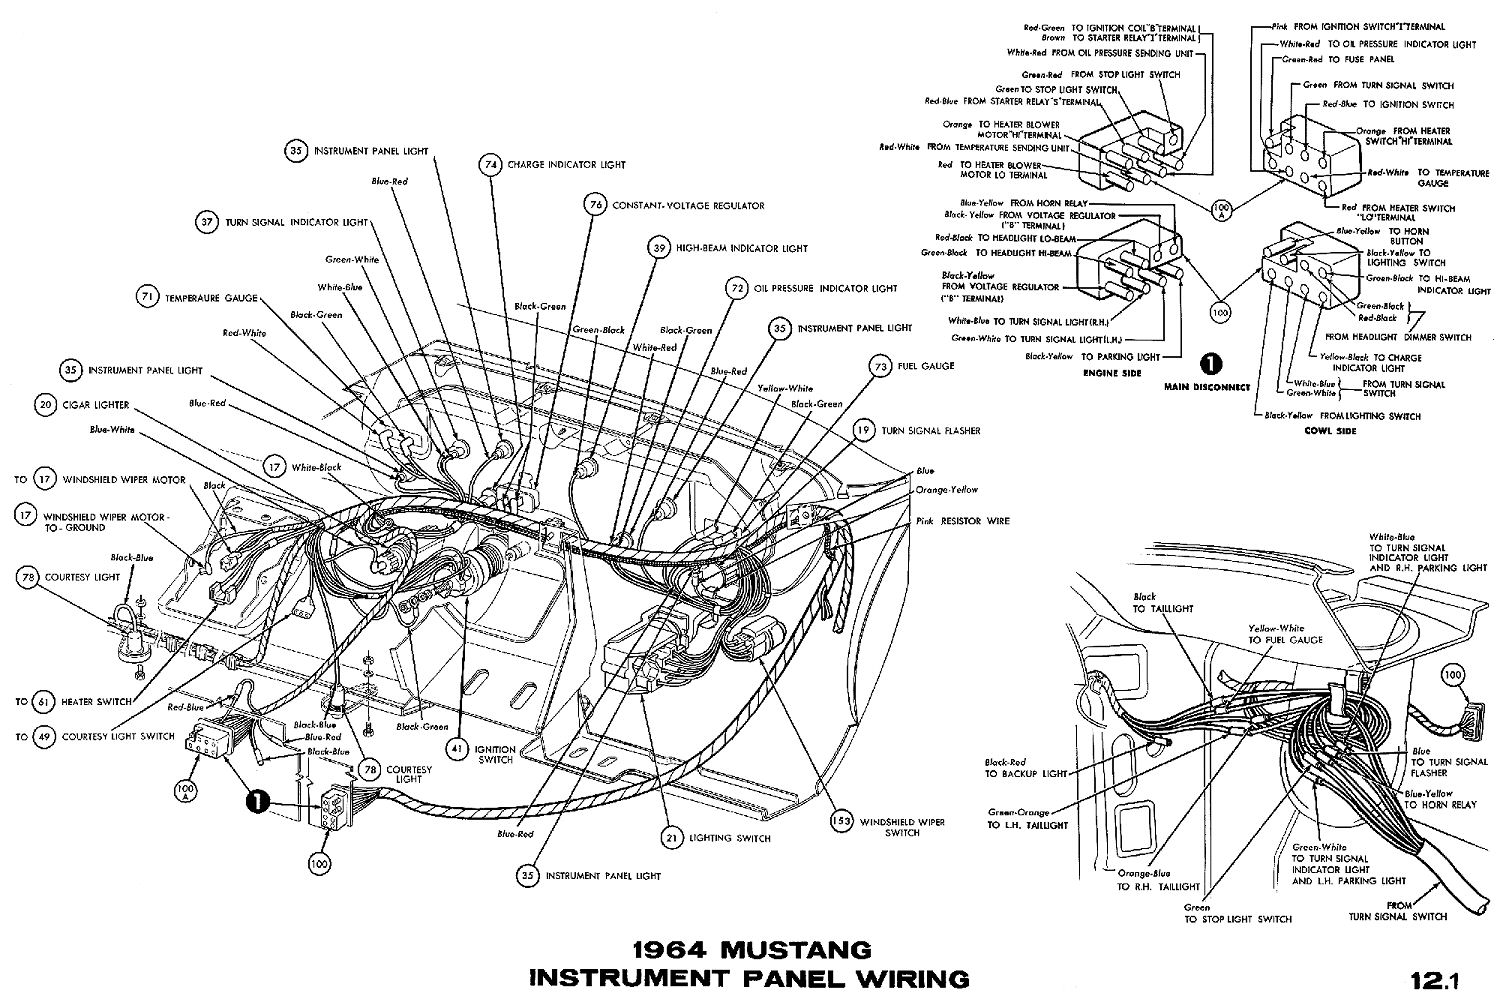 1964b 1964 mustang wiring diagrams average joe restoration 1969 mustang dash wiring diagram at fashall.co